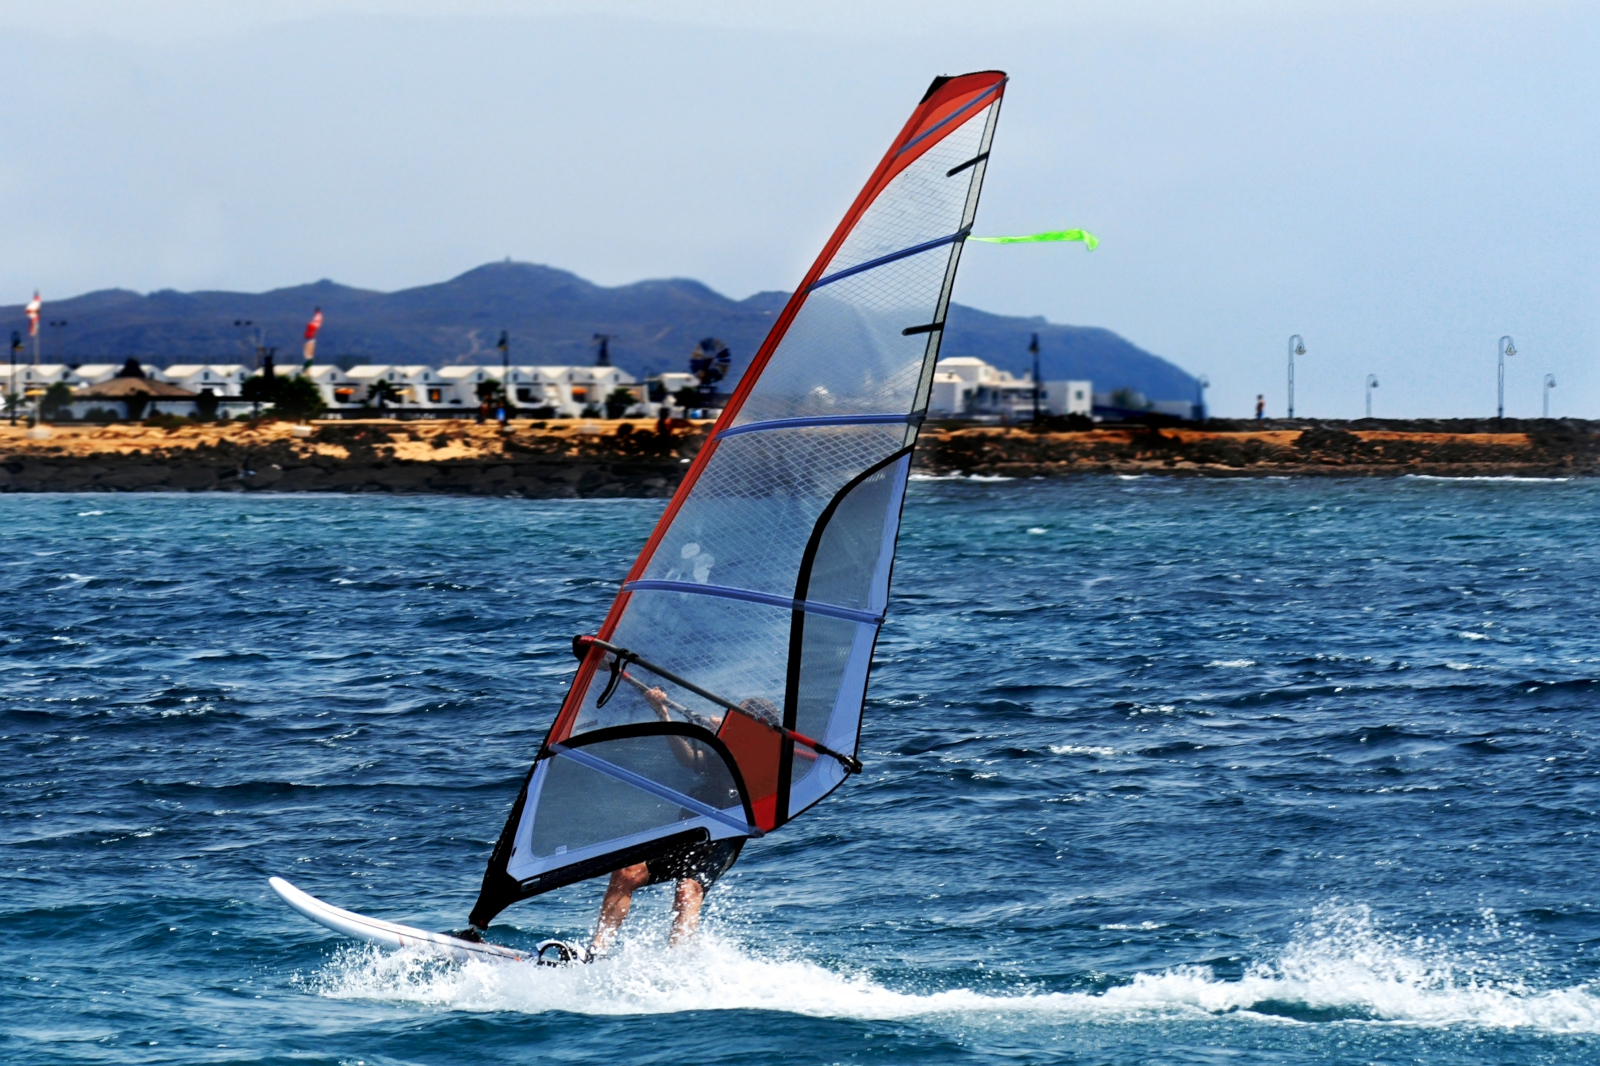 'A windsurfer sailing off the coast of Lanzarote' - Lanzarote